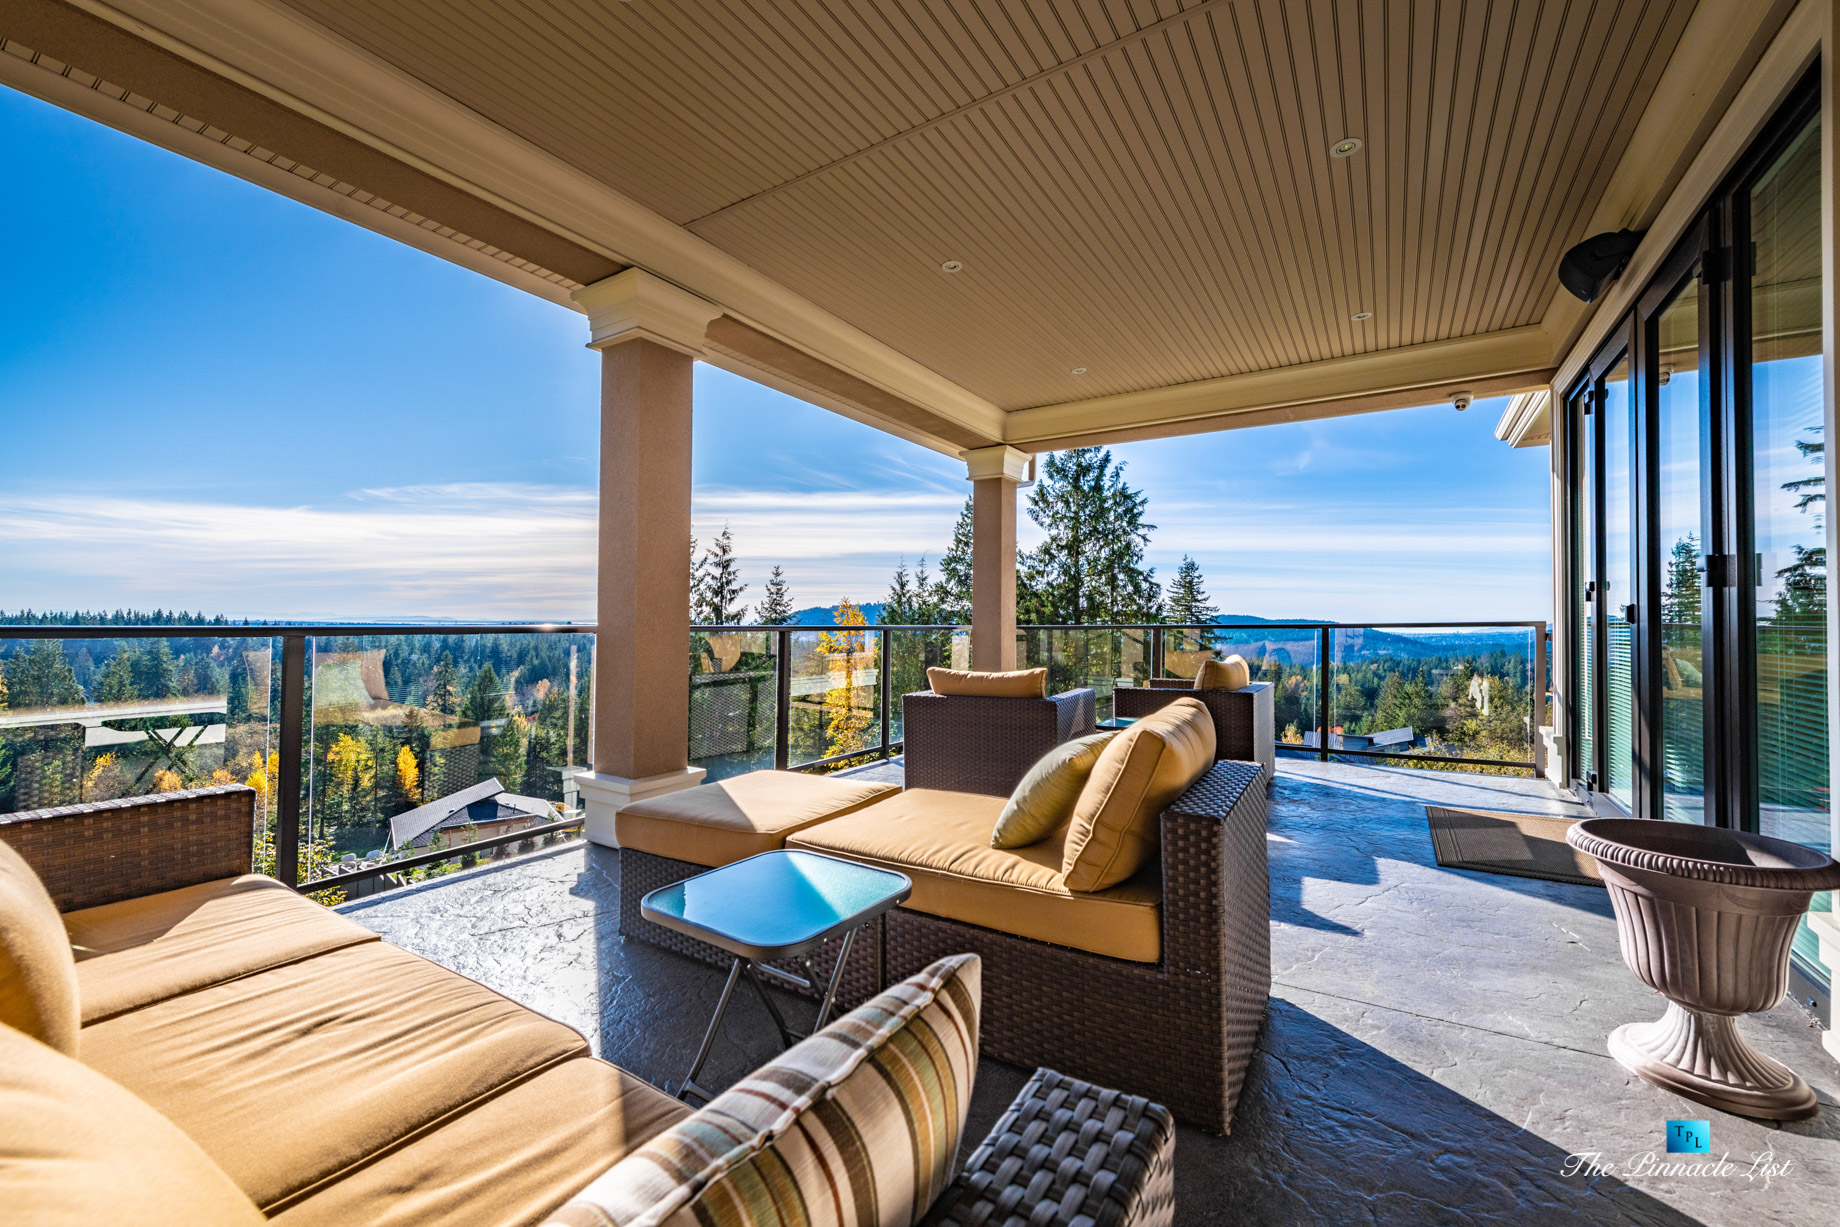 2057 Ridge Mountain Drive, Anmore, BC, Canada - Covered Private Deck View - Luxury Real Estate - West Coast Greater Vancouver Home